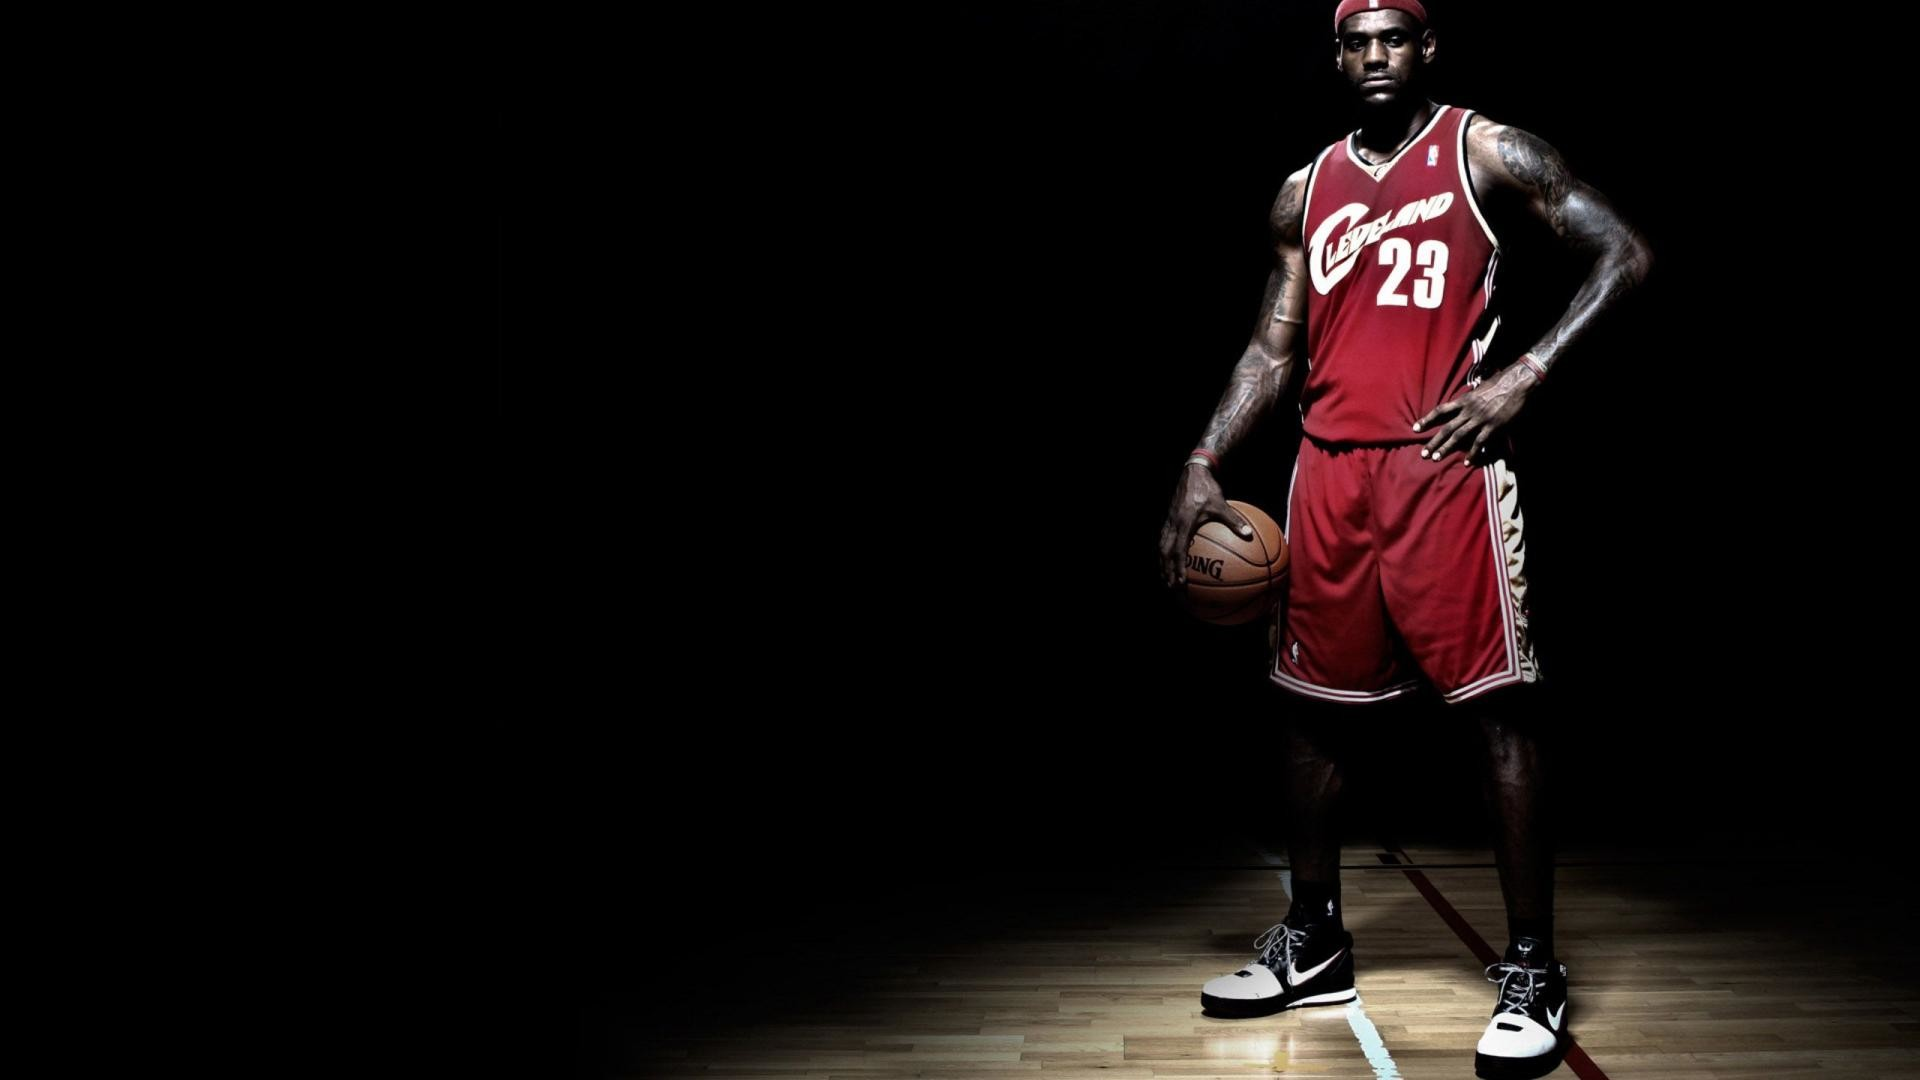 1920x1080 lebron-james-wallpaper-miami-heat